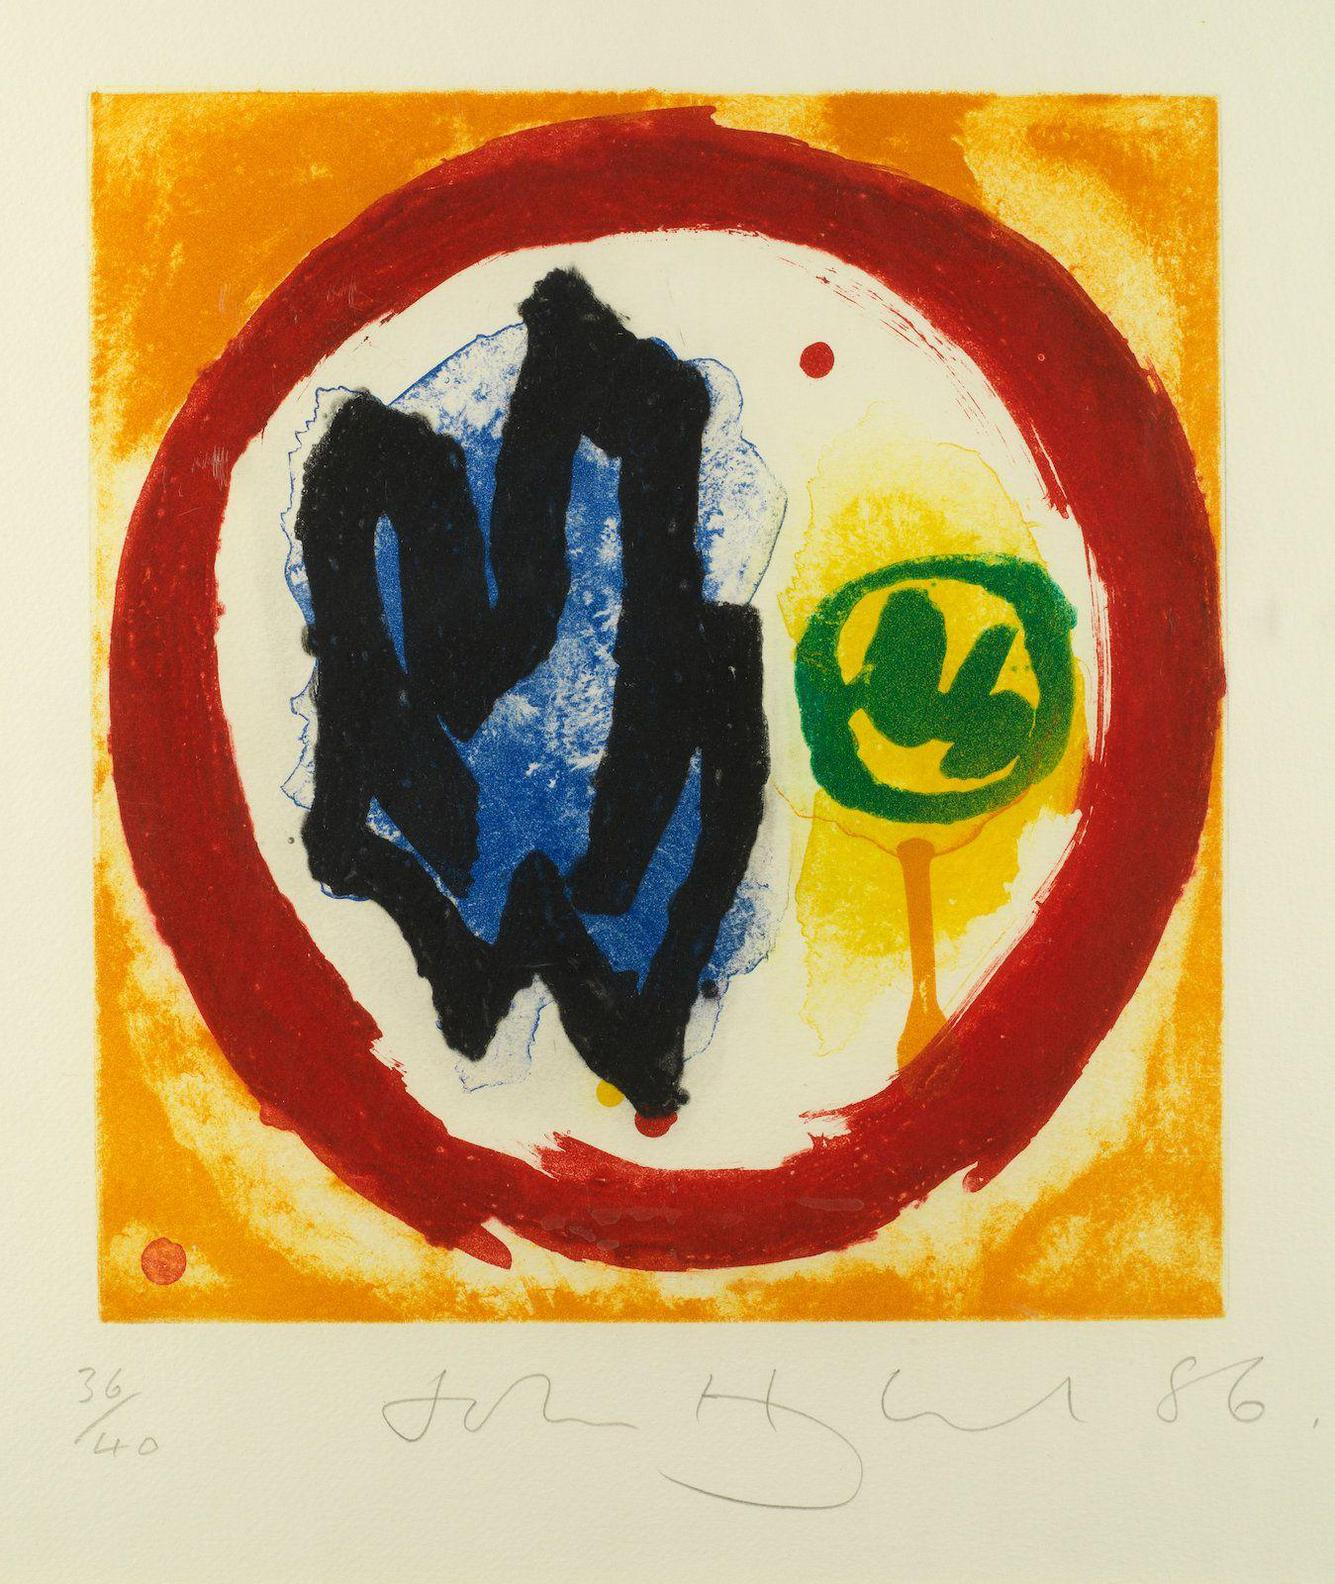 John Hoyland-Kinor; Ekel, From The English Etching Series-1986